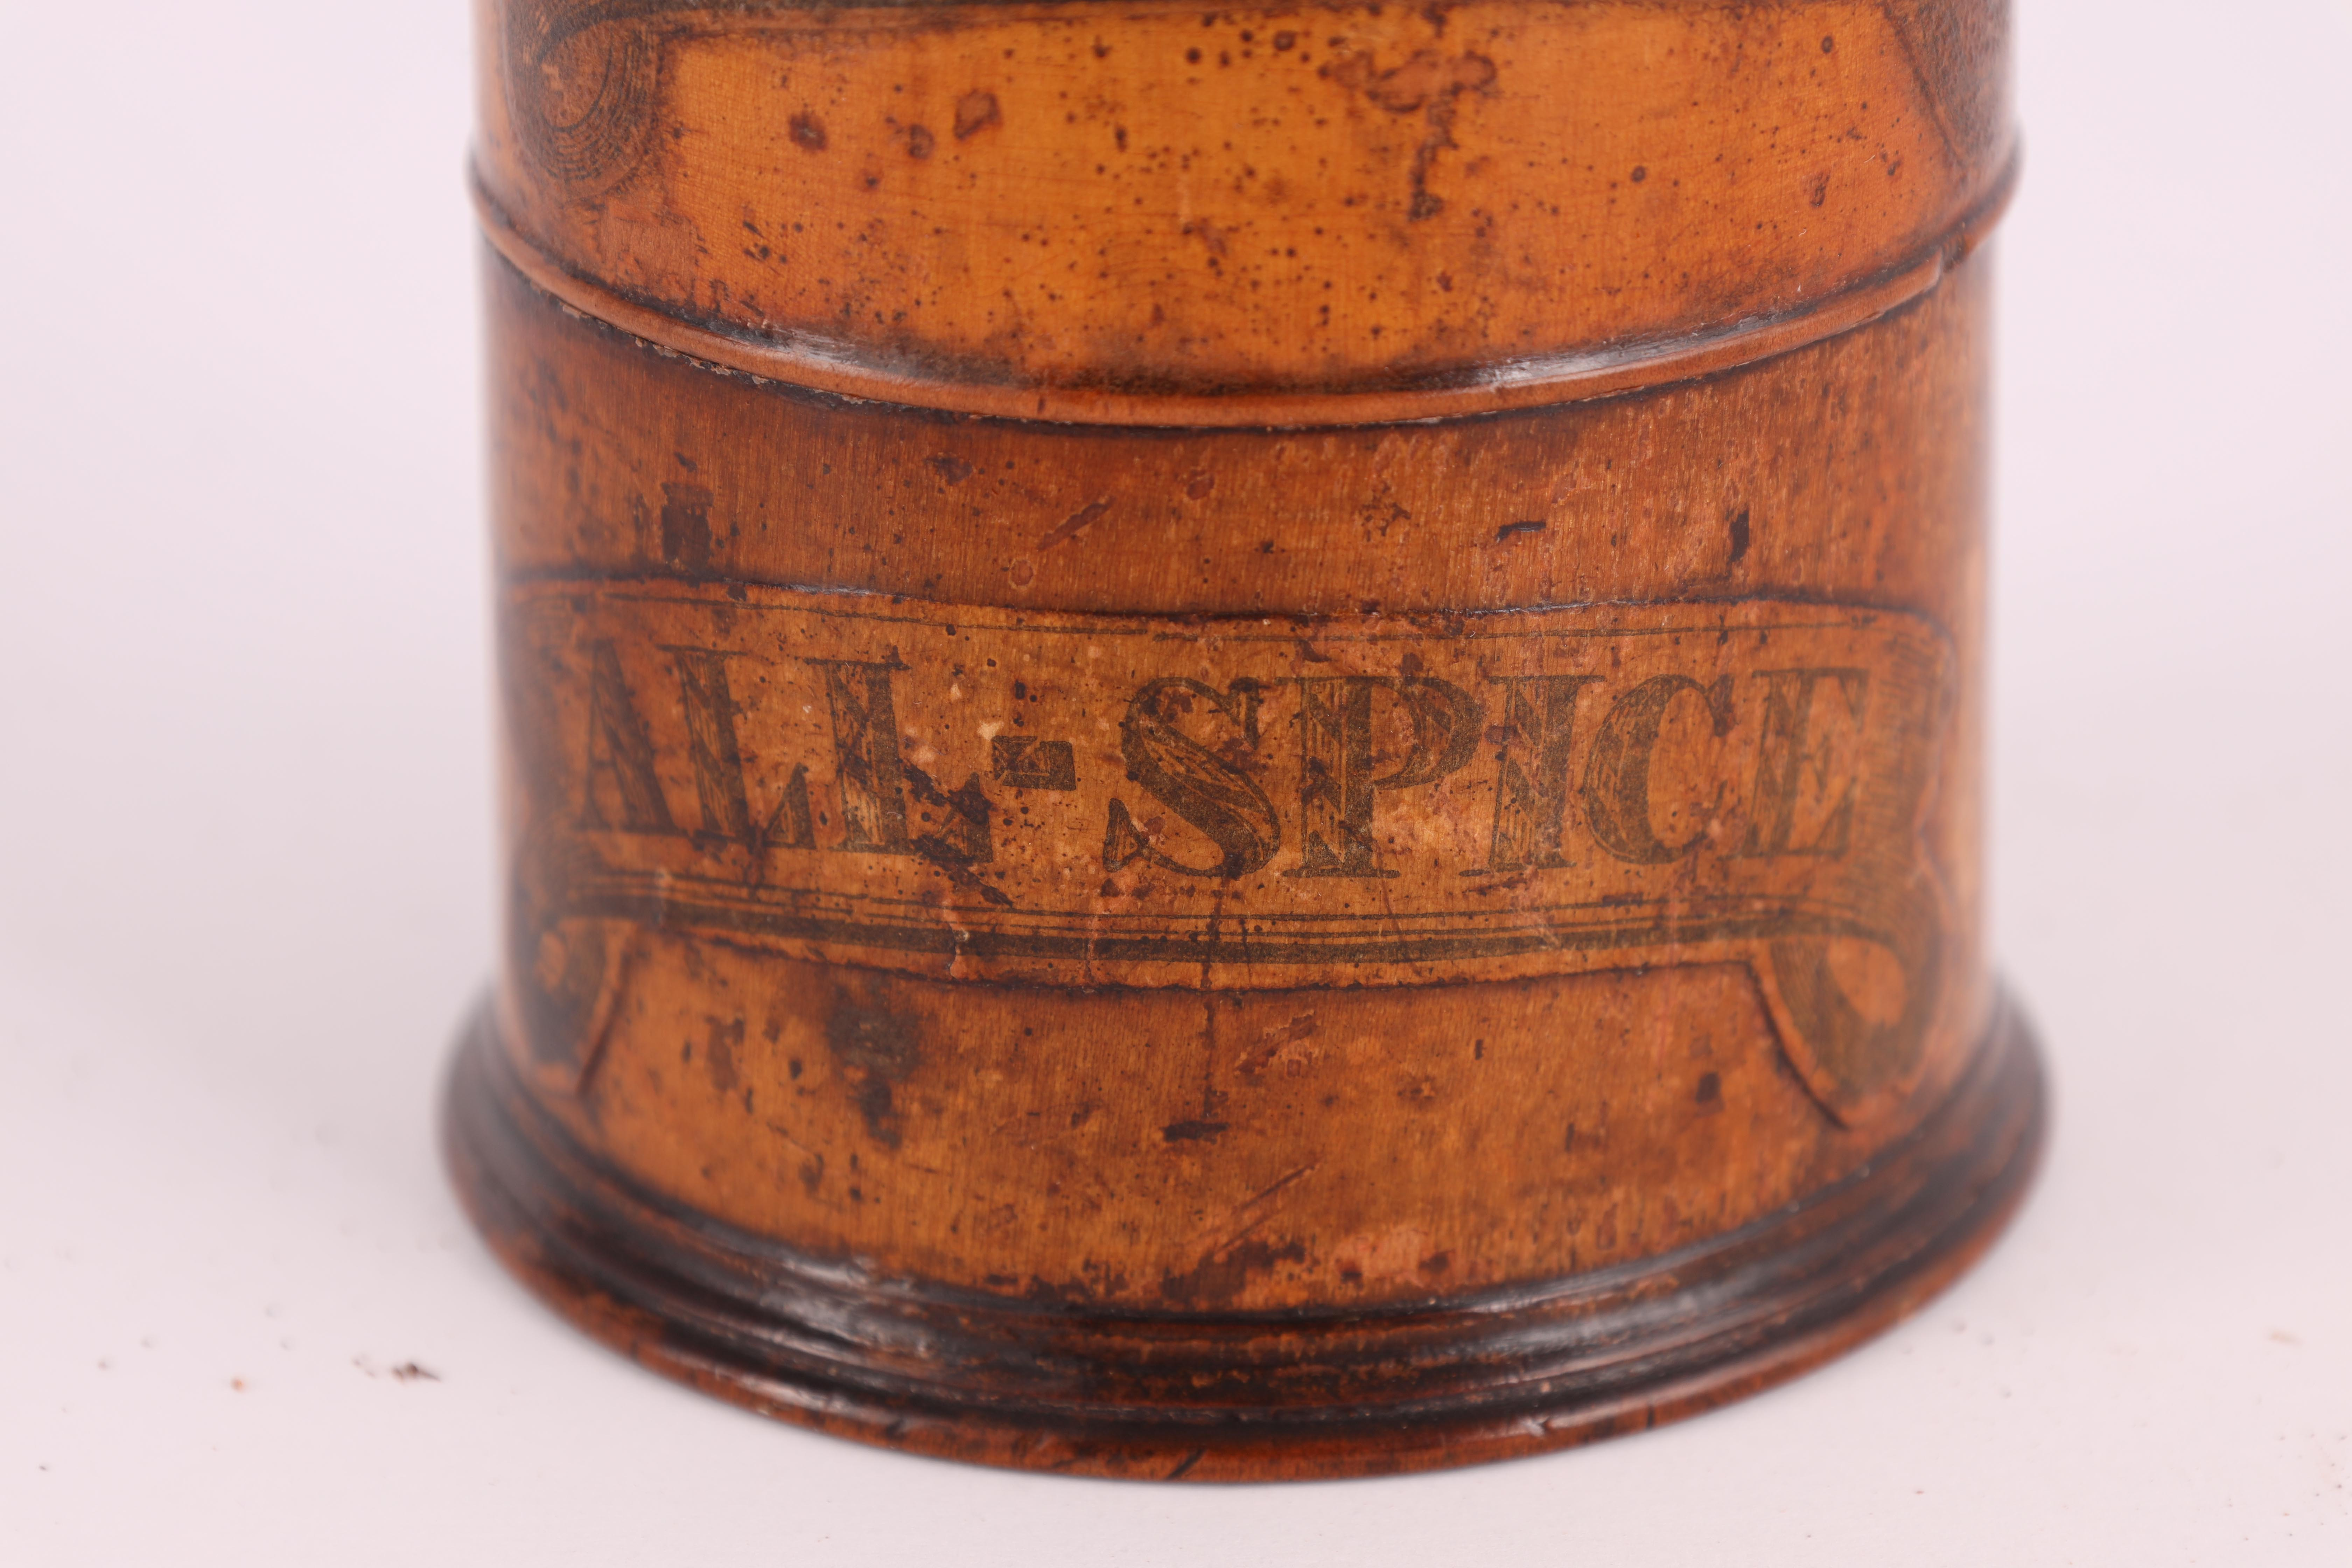 TWO EARLY 19TH CENTURY SYCAMORE TREEN SPICE TOWERS with original labels, the three stack 15cm - Image 8 of 13